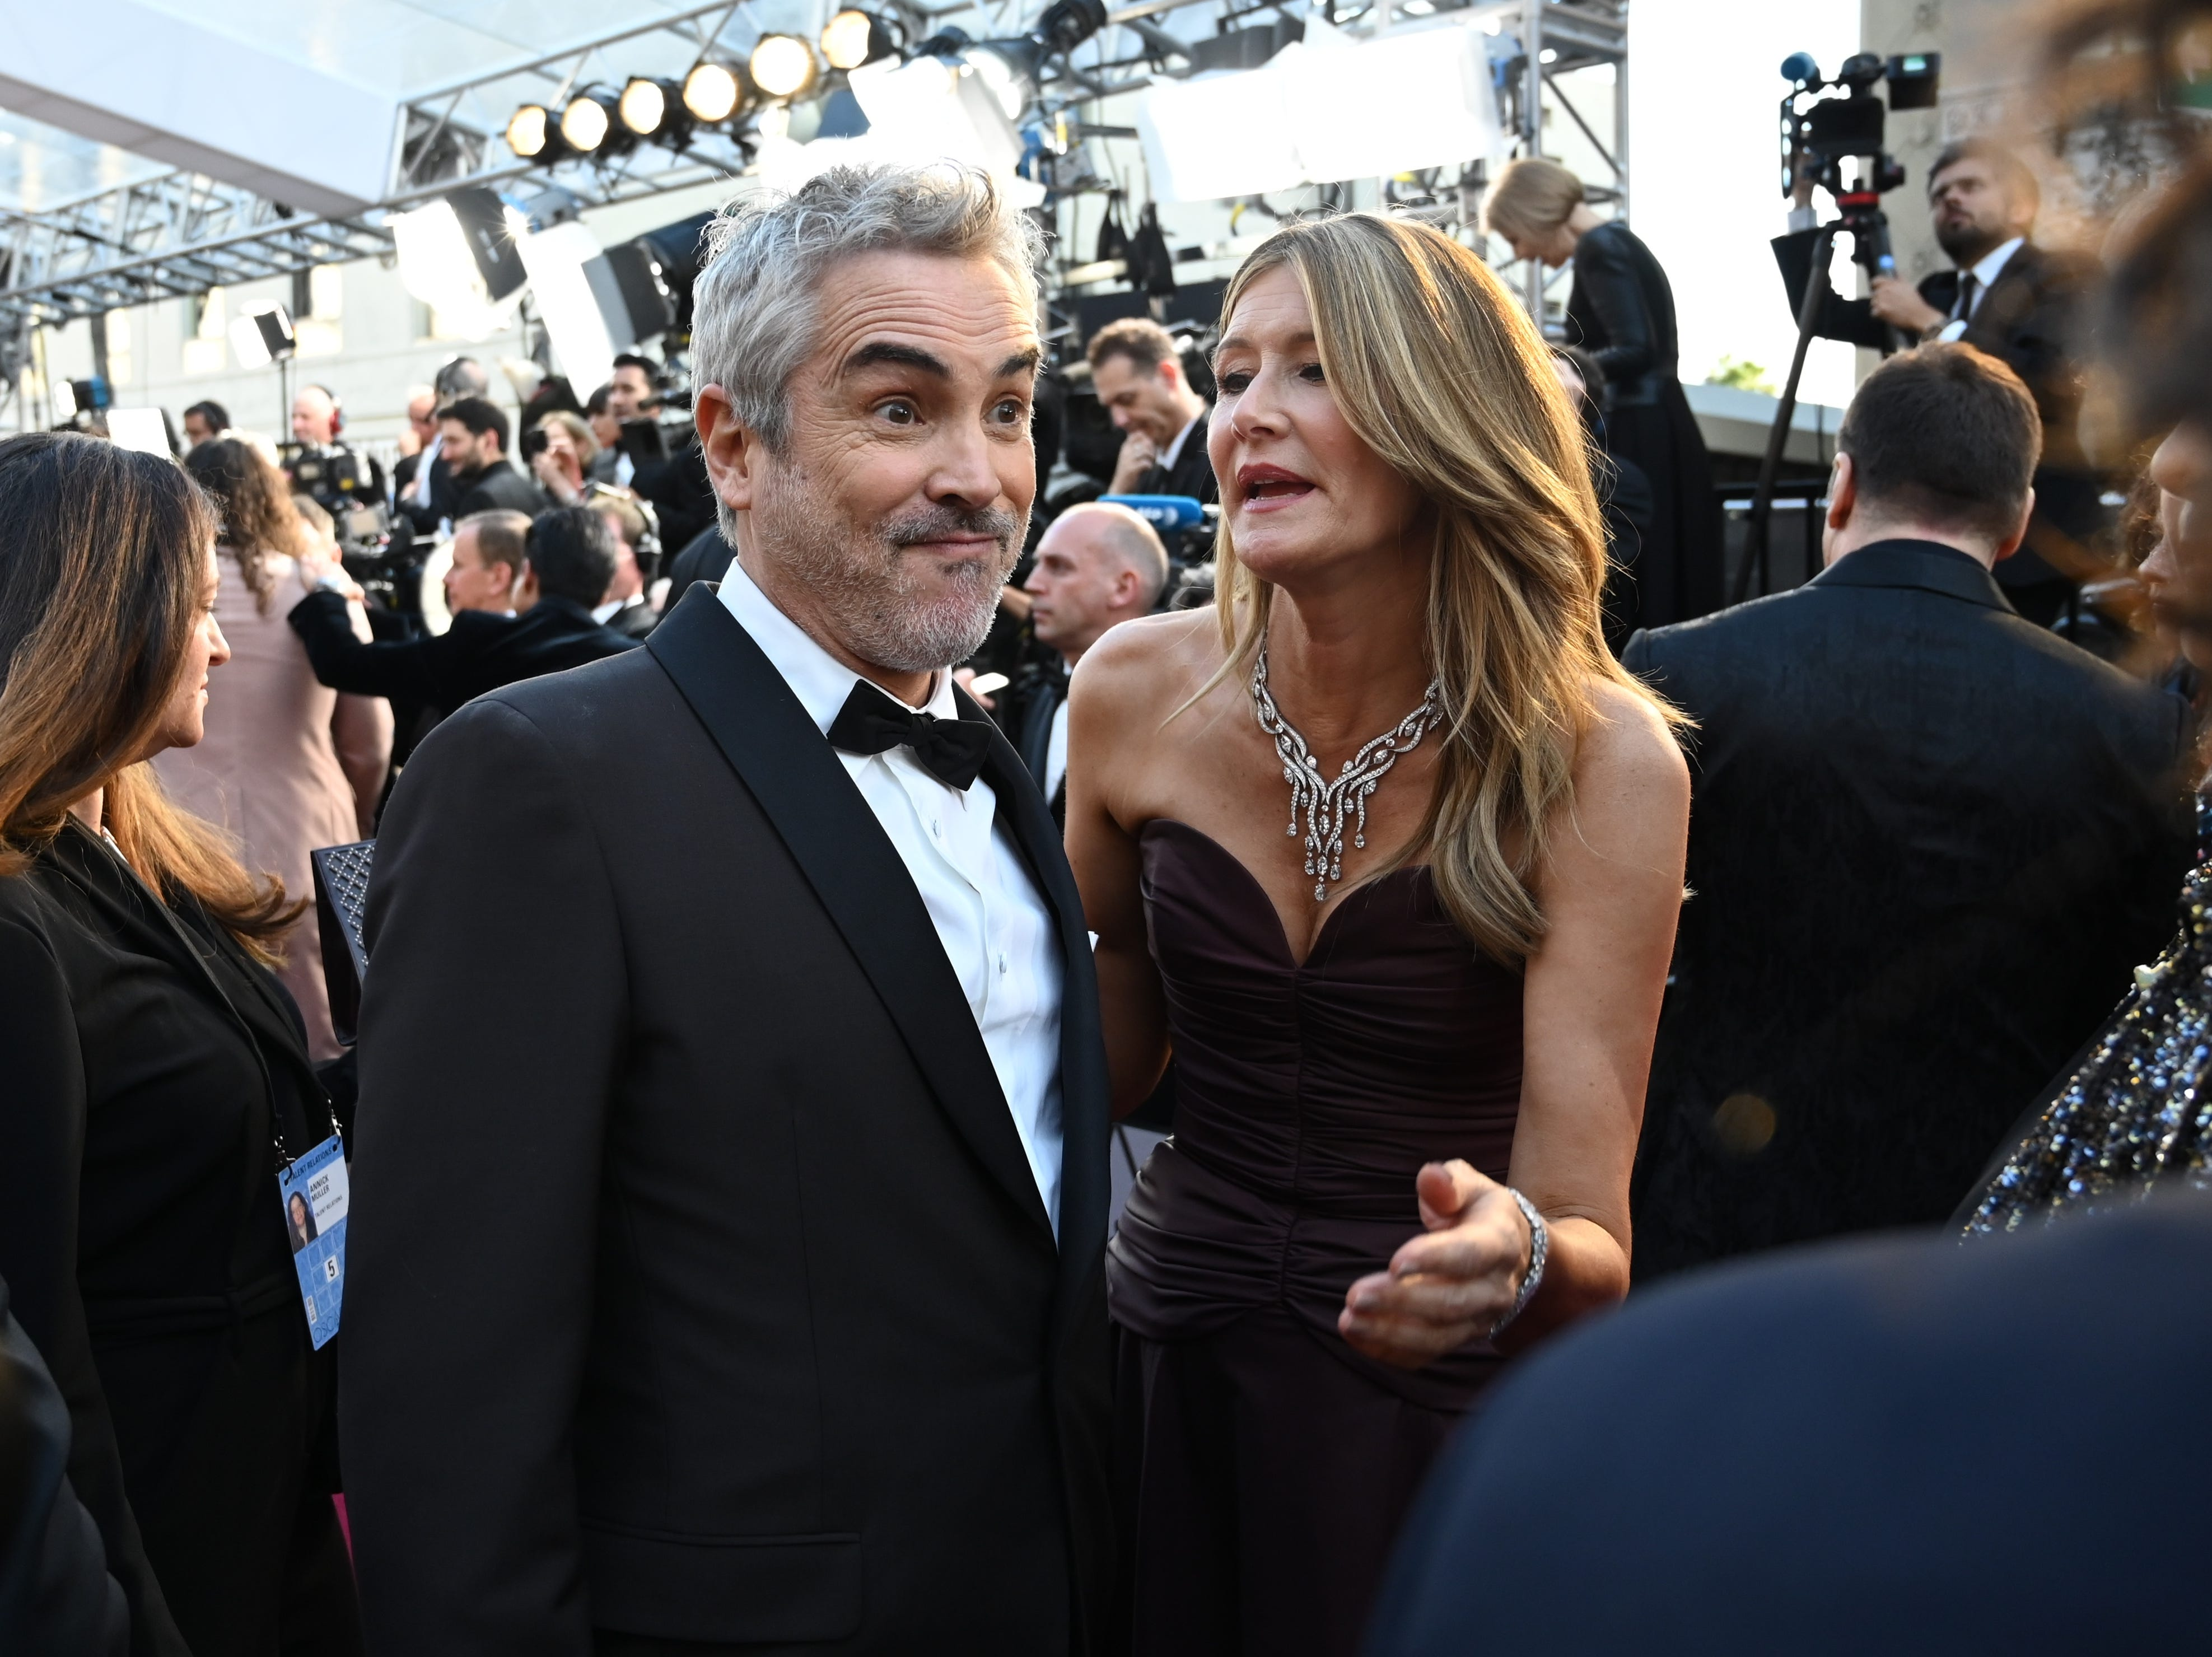 February 24, 2019; Los Angeles, CA, USA; Alfonso Cuaron and Laura Dern arrive at the 91st Academy Awards at the Dolby Theatre. Mandatory Credit: Robert Hanashiro-USA TODAY NETWORK (Via OlyDrop)